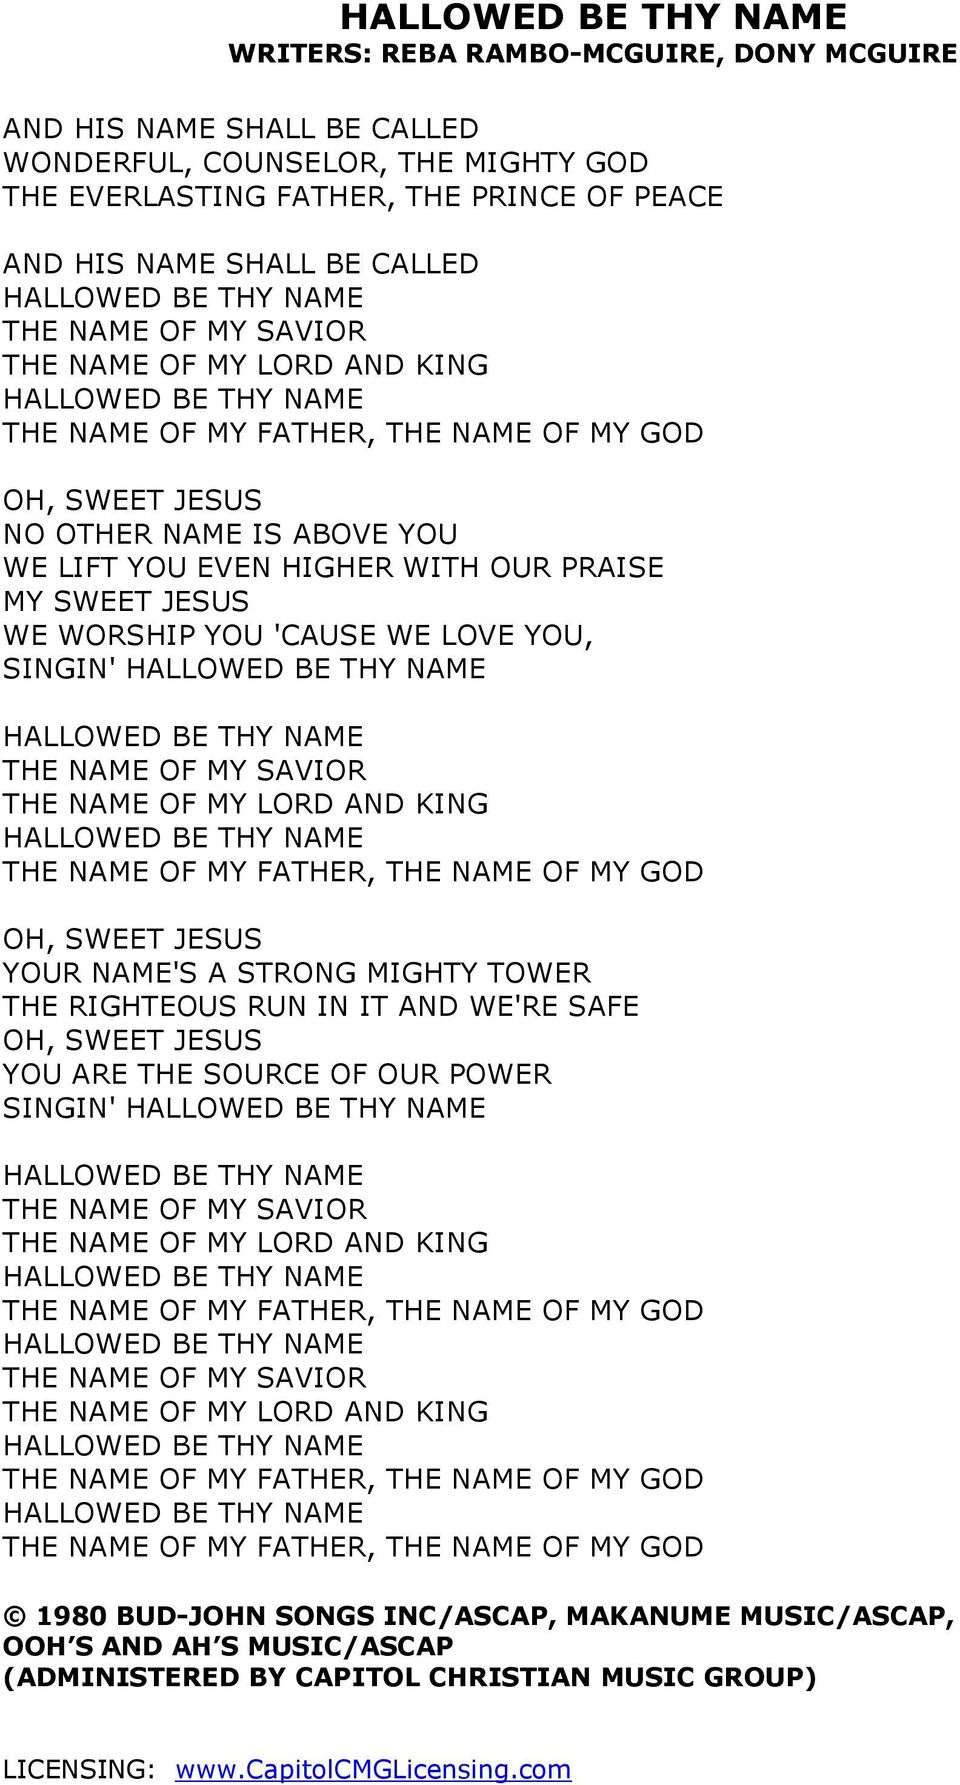 NAME OF MY LORD AND KING THE NAME OF MY FATHER, THE NAME OF MY GOD OH, SWEET JESUS YOUR NAME'S A STRONG MIGHTY TOWER THE RIGHTEOUS RUN IN IT AND WE'RE SAFE OH, SWEET JESUS YOU ARE THE SOURCE OF OUR